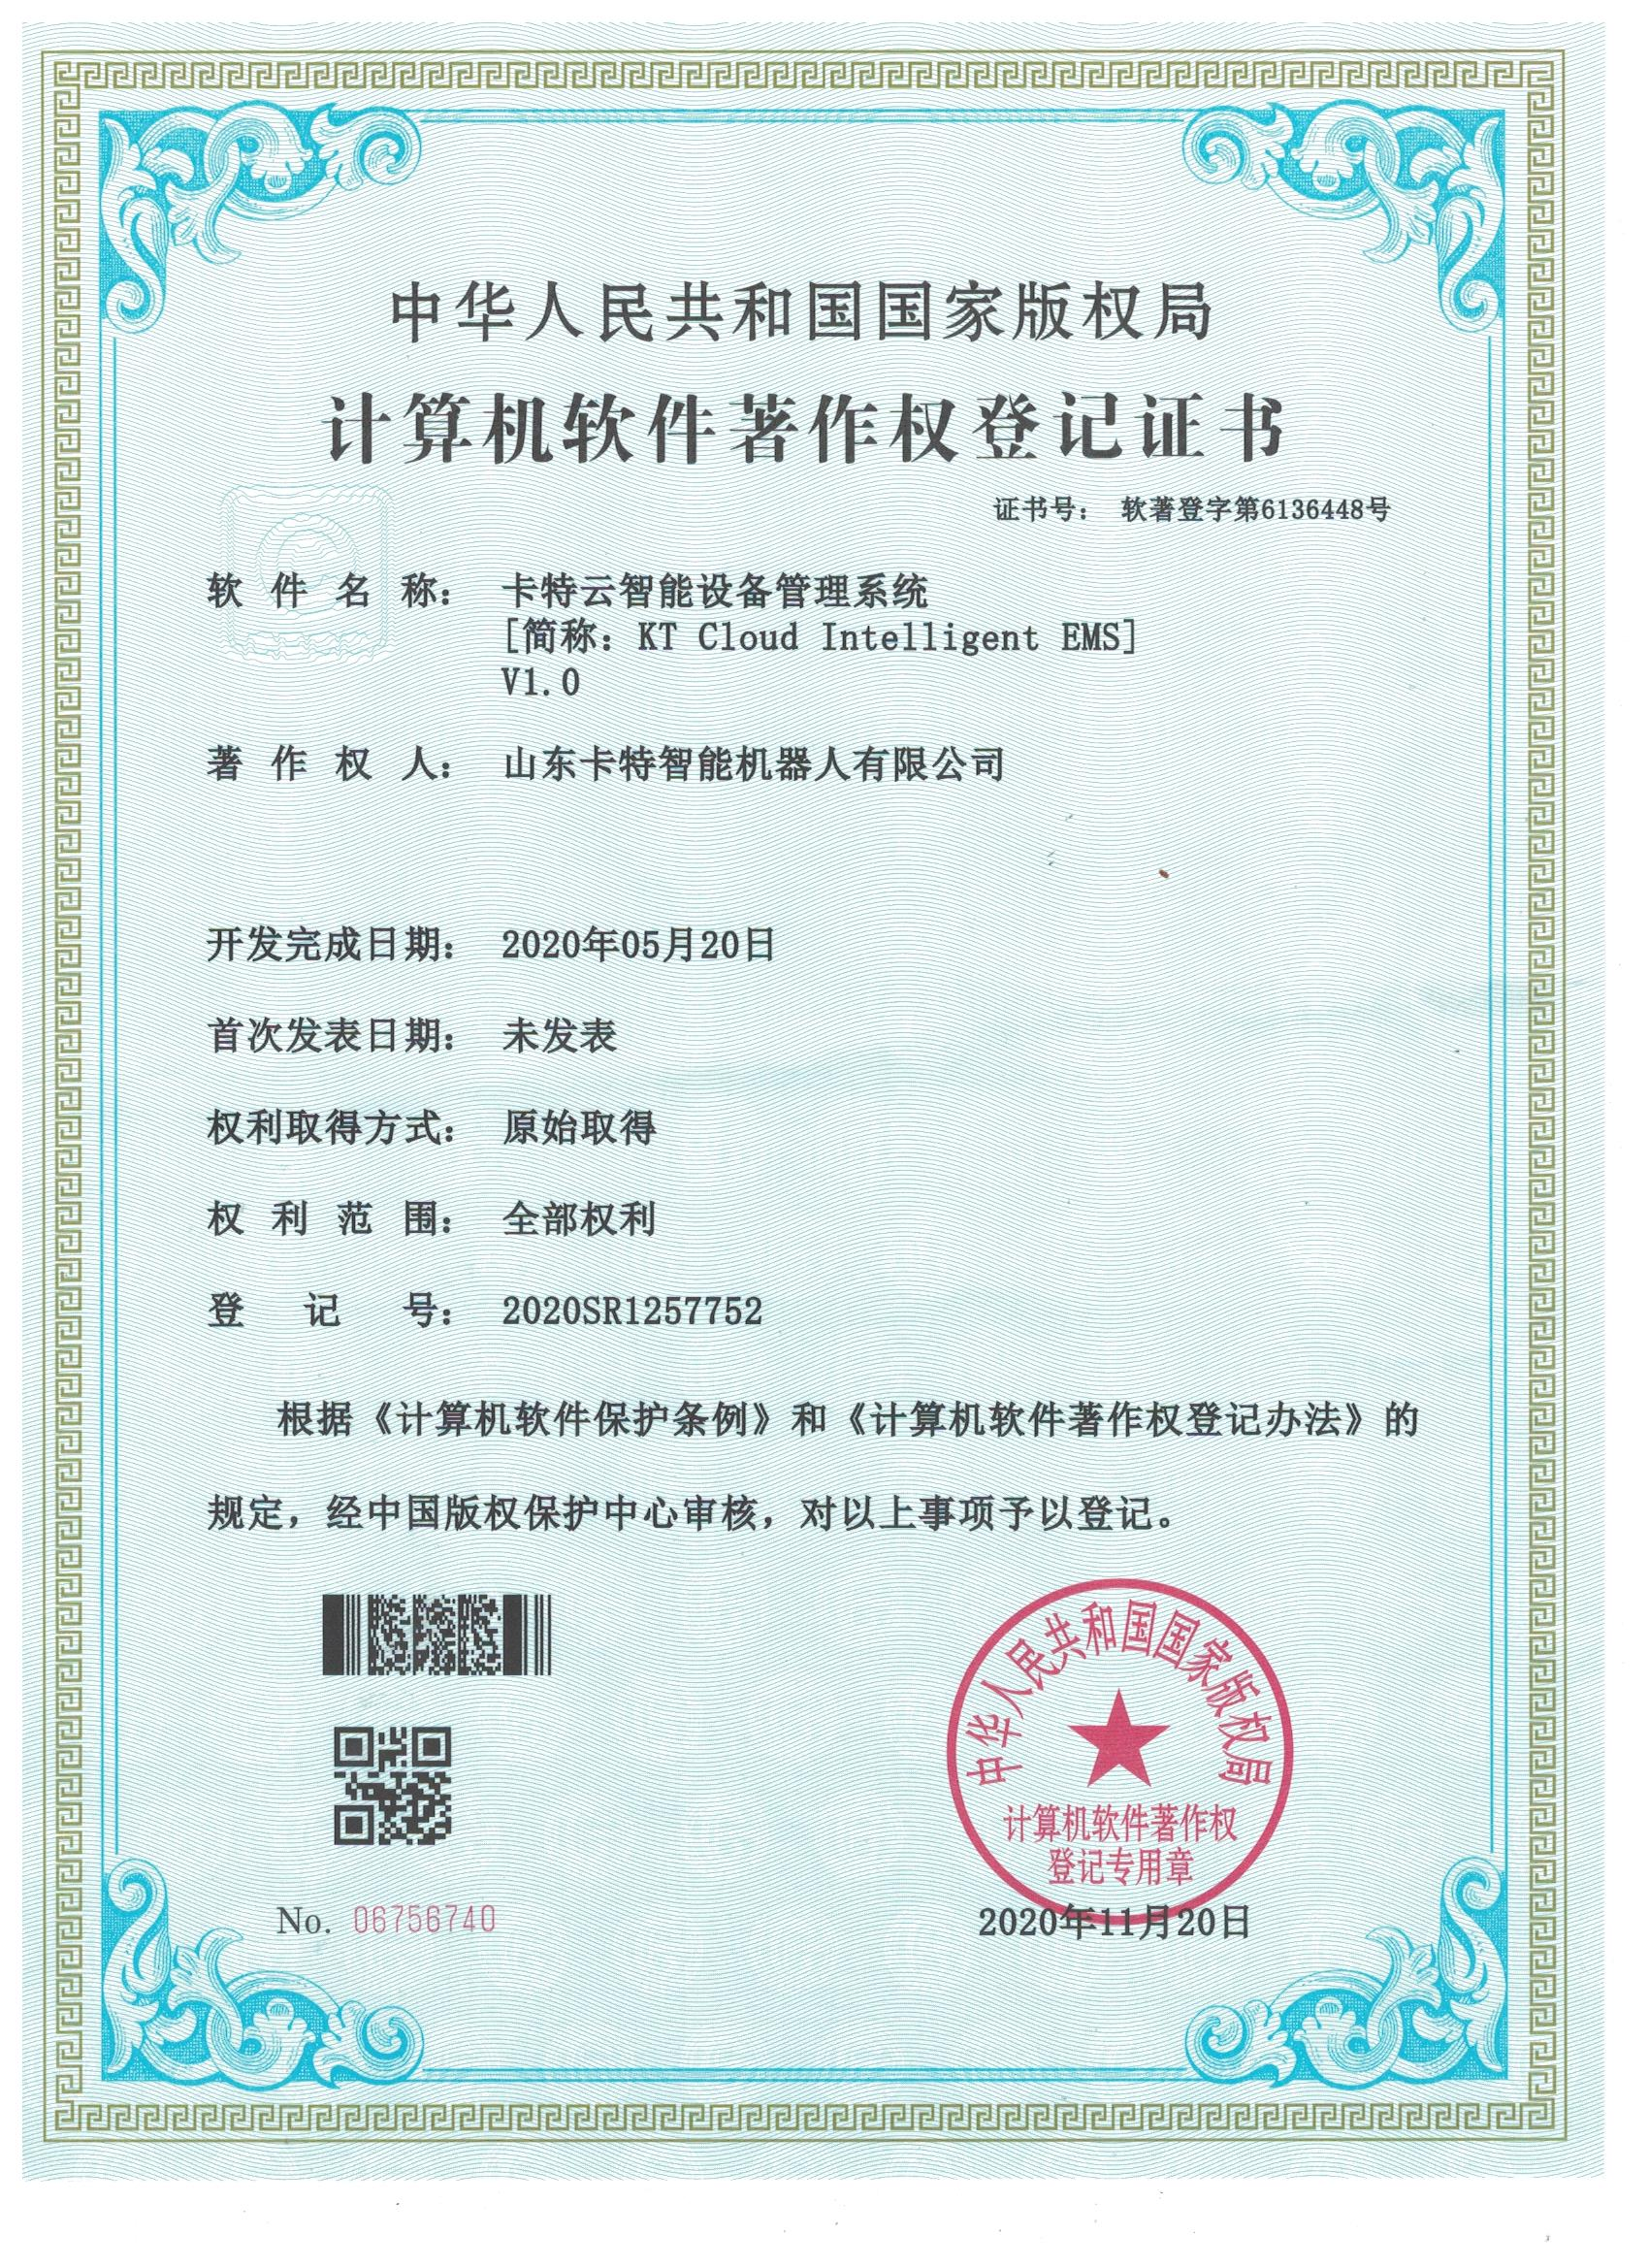 Congratulations To The Kate Intelligent Robot Company Under China Coal Group For Adding A National Computer Software Copyright Certificate